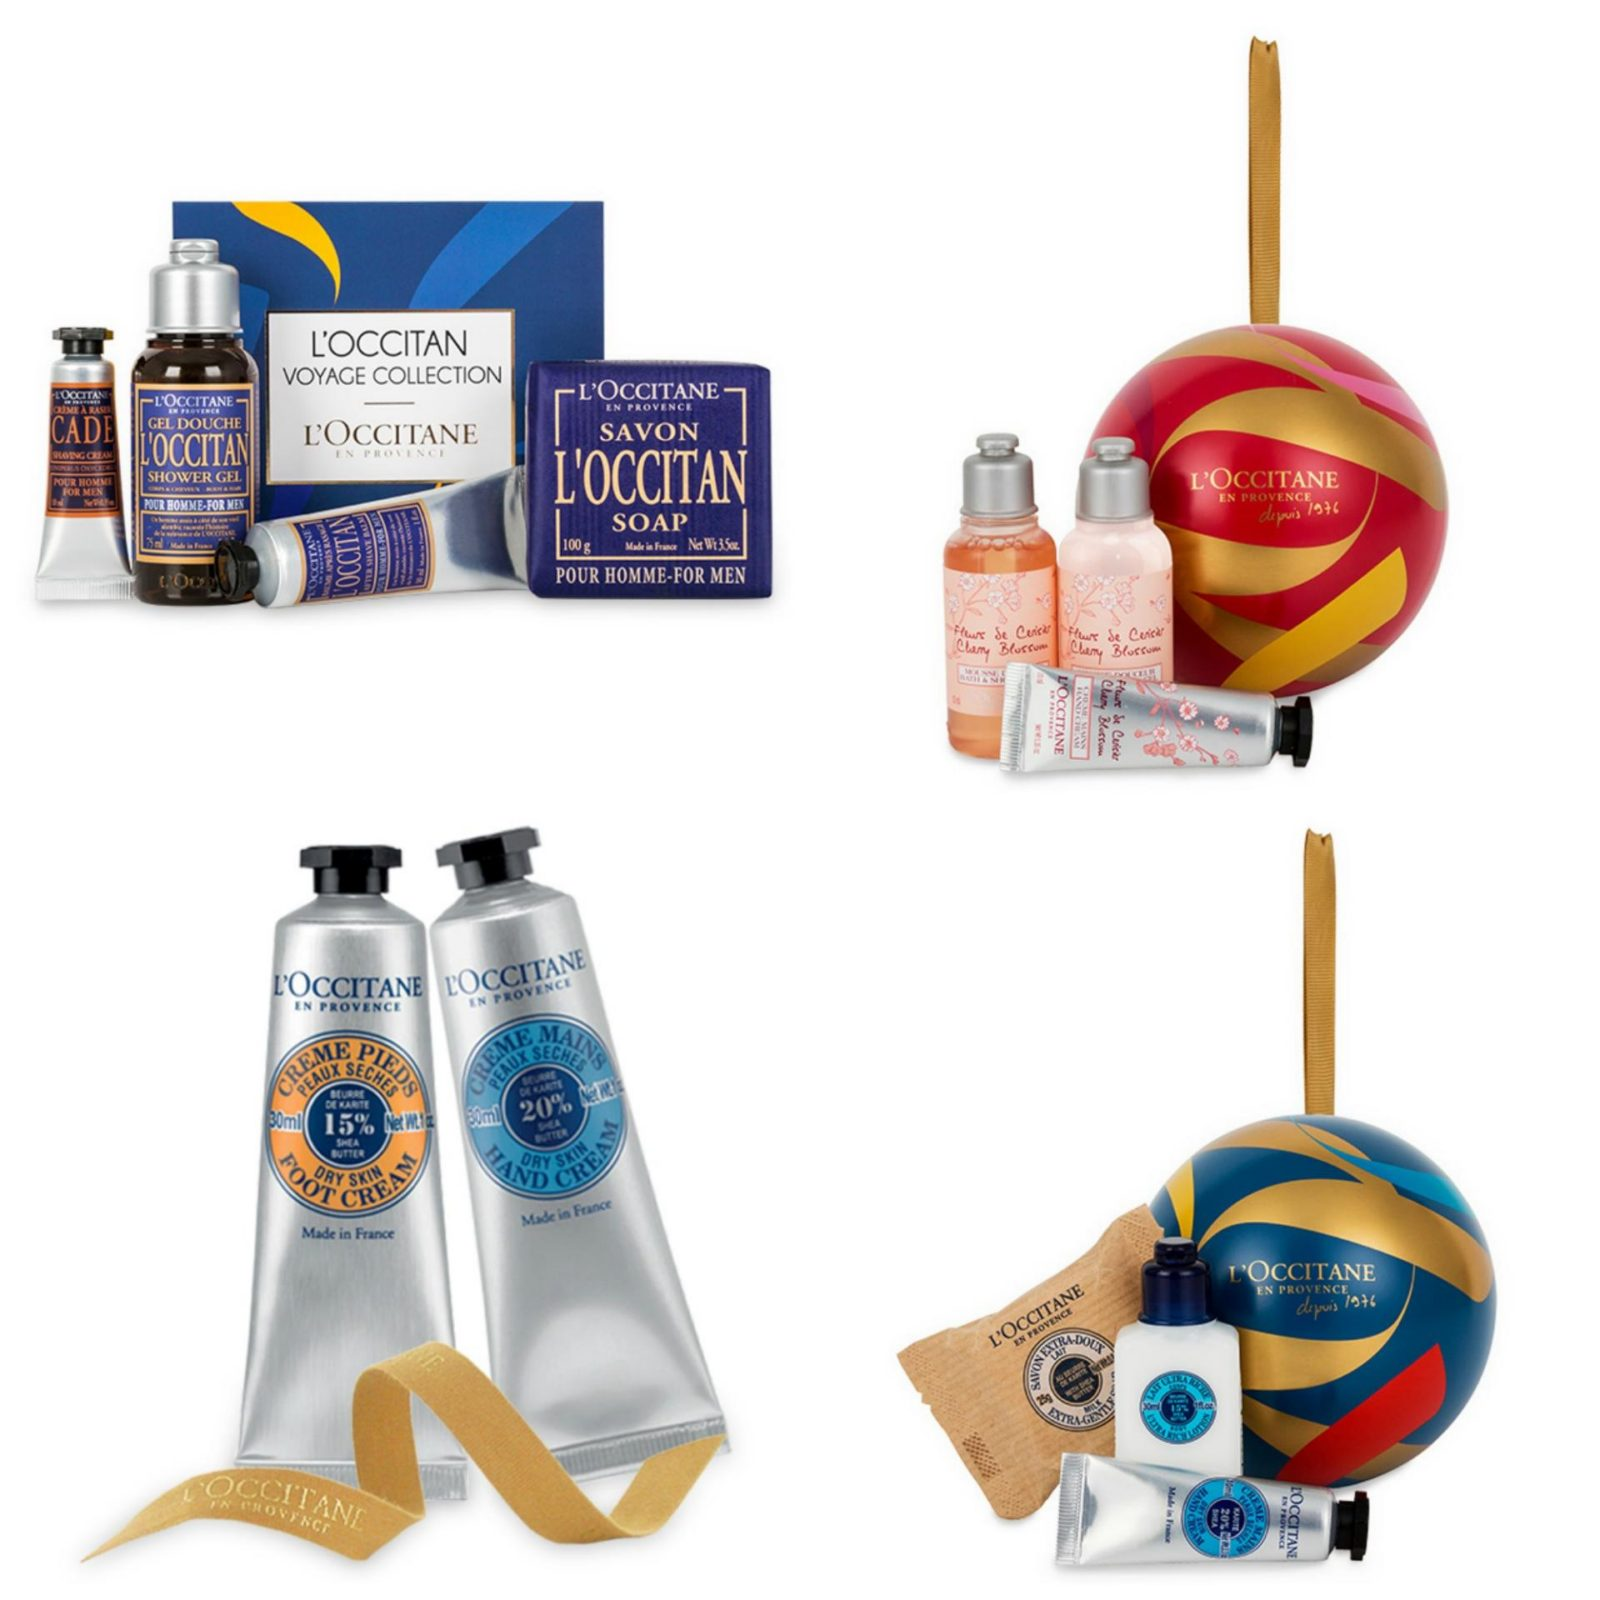 loccitane-gift-guide-stocking-fillers